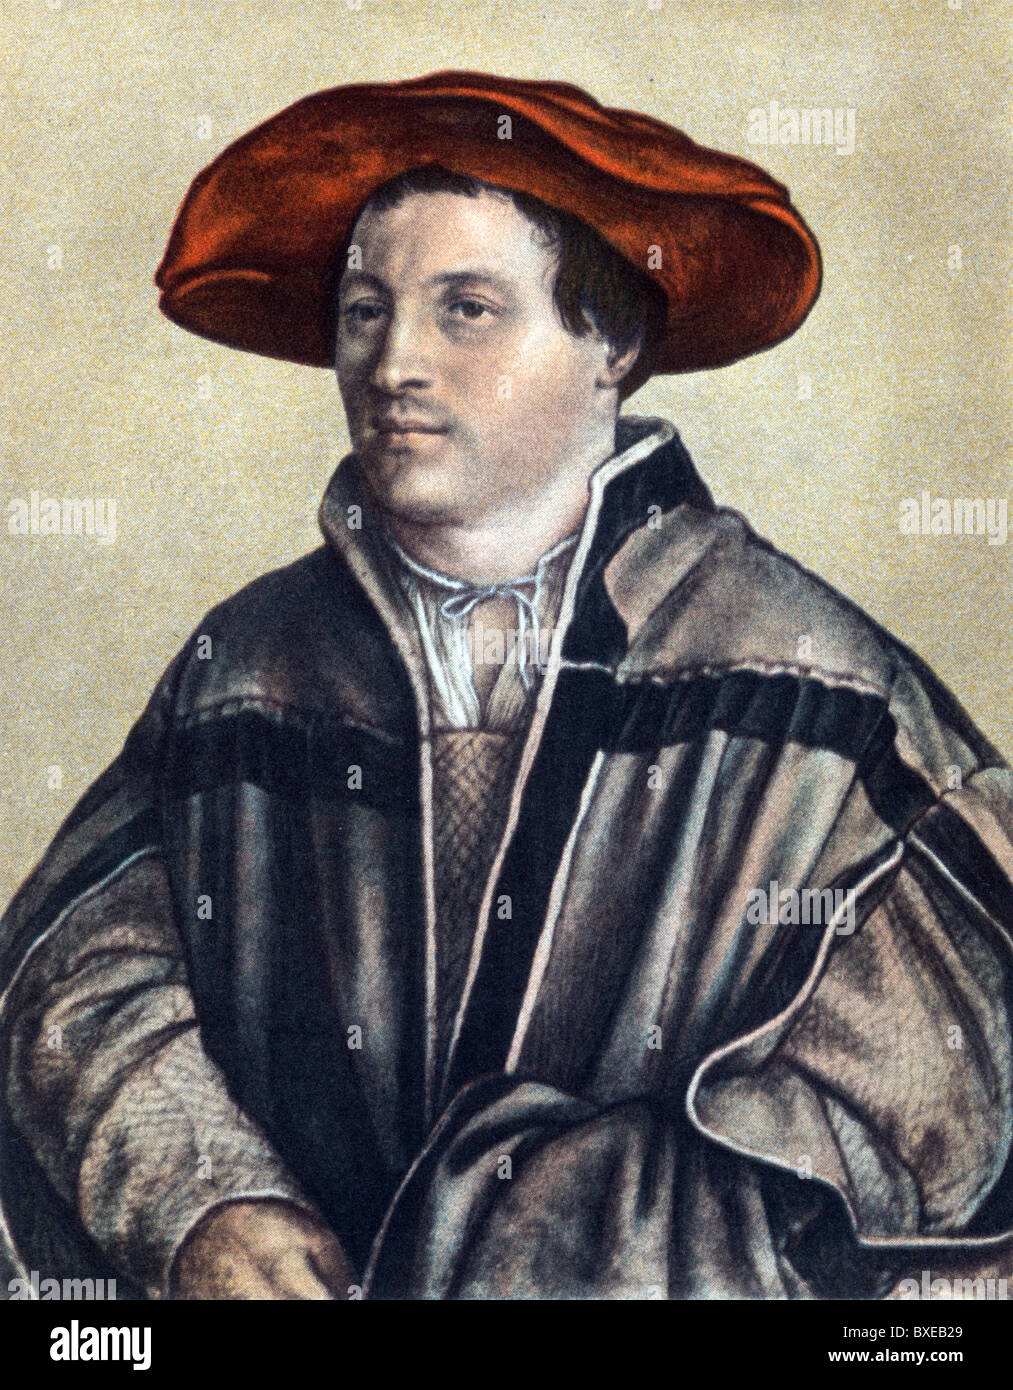 Sketch by Hans Holbein the Younger; Self Portrait; The Artist at the age of 26; Colour Illustration; - Stock Image